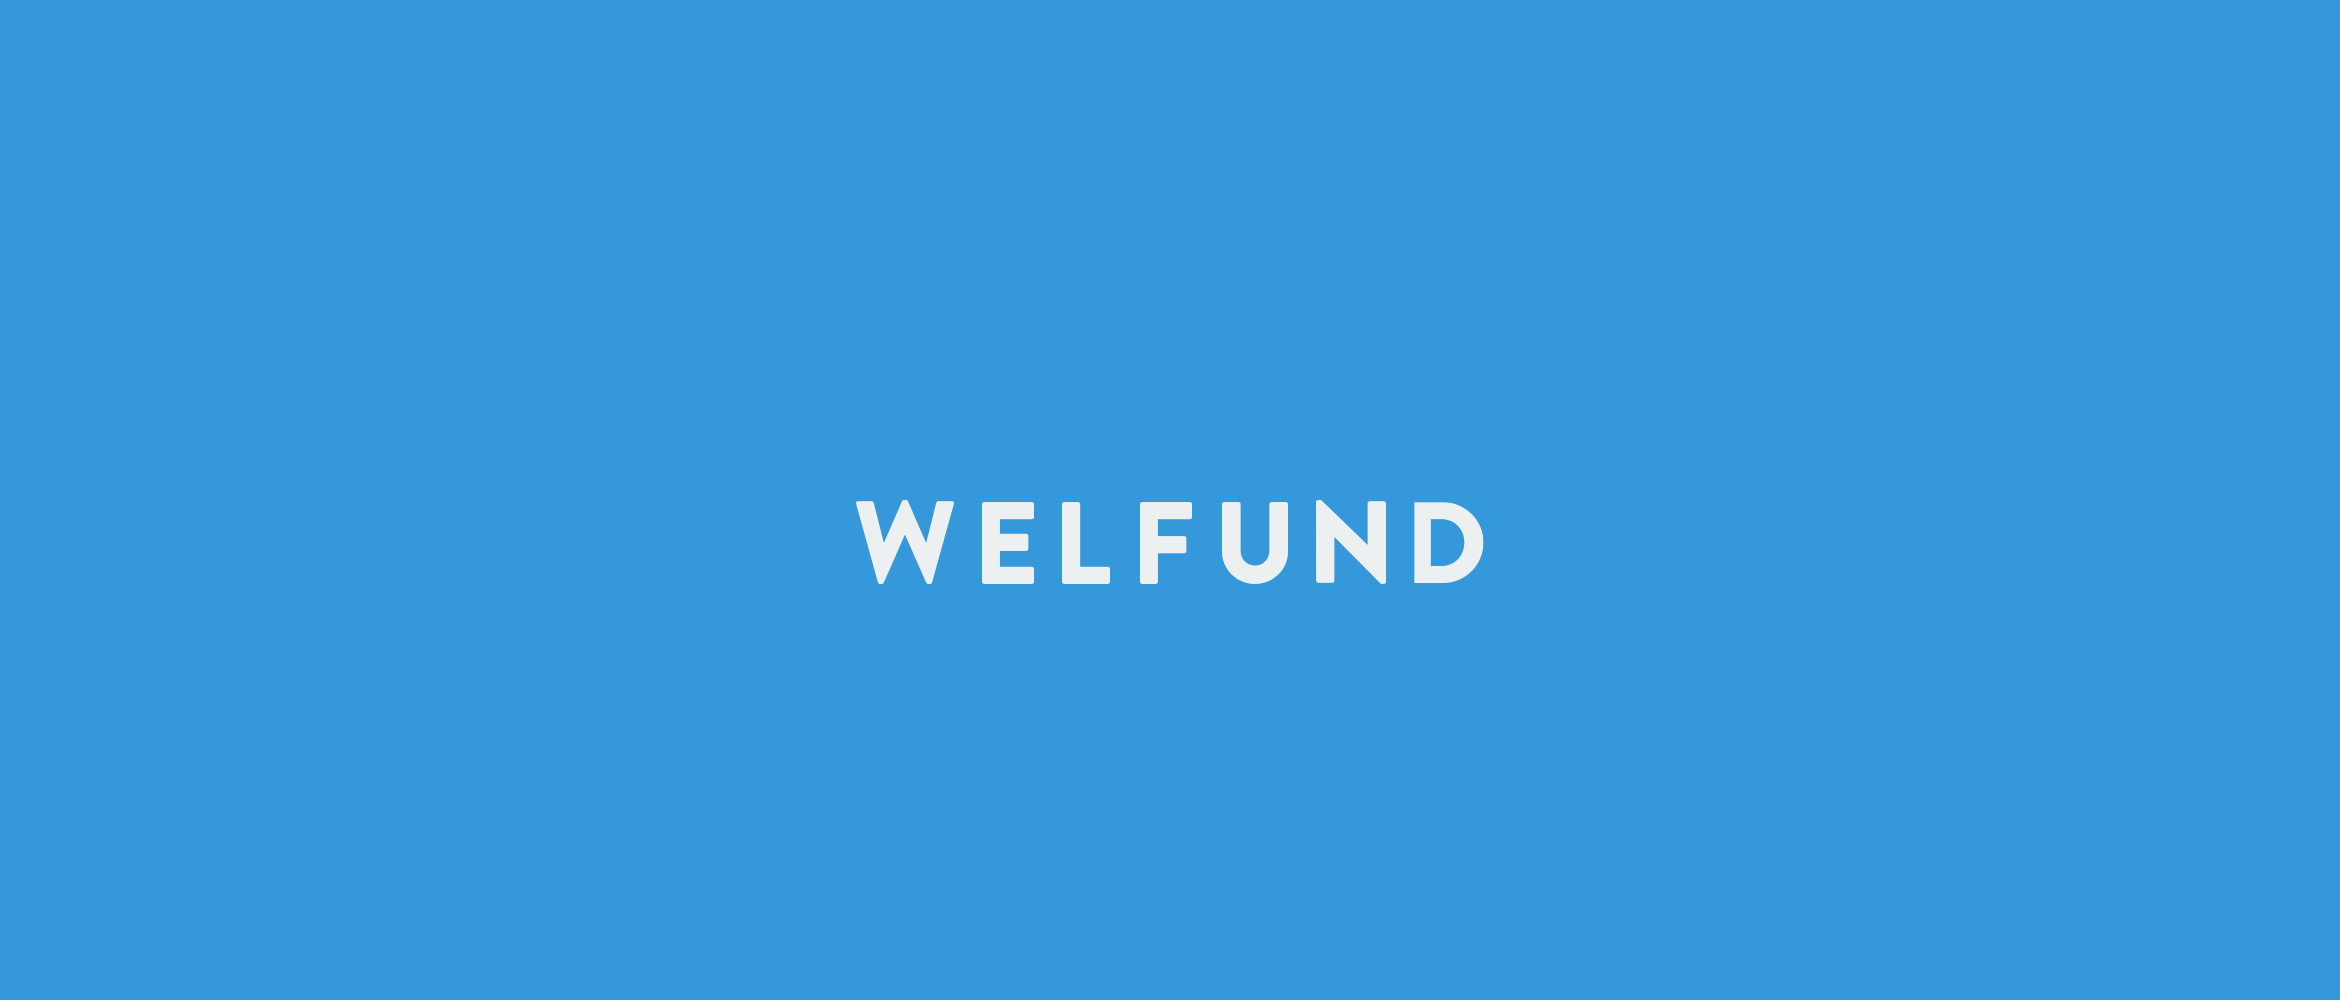 WELFUND_FULL_1170x500_01